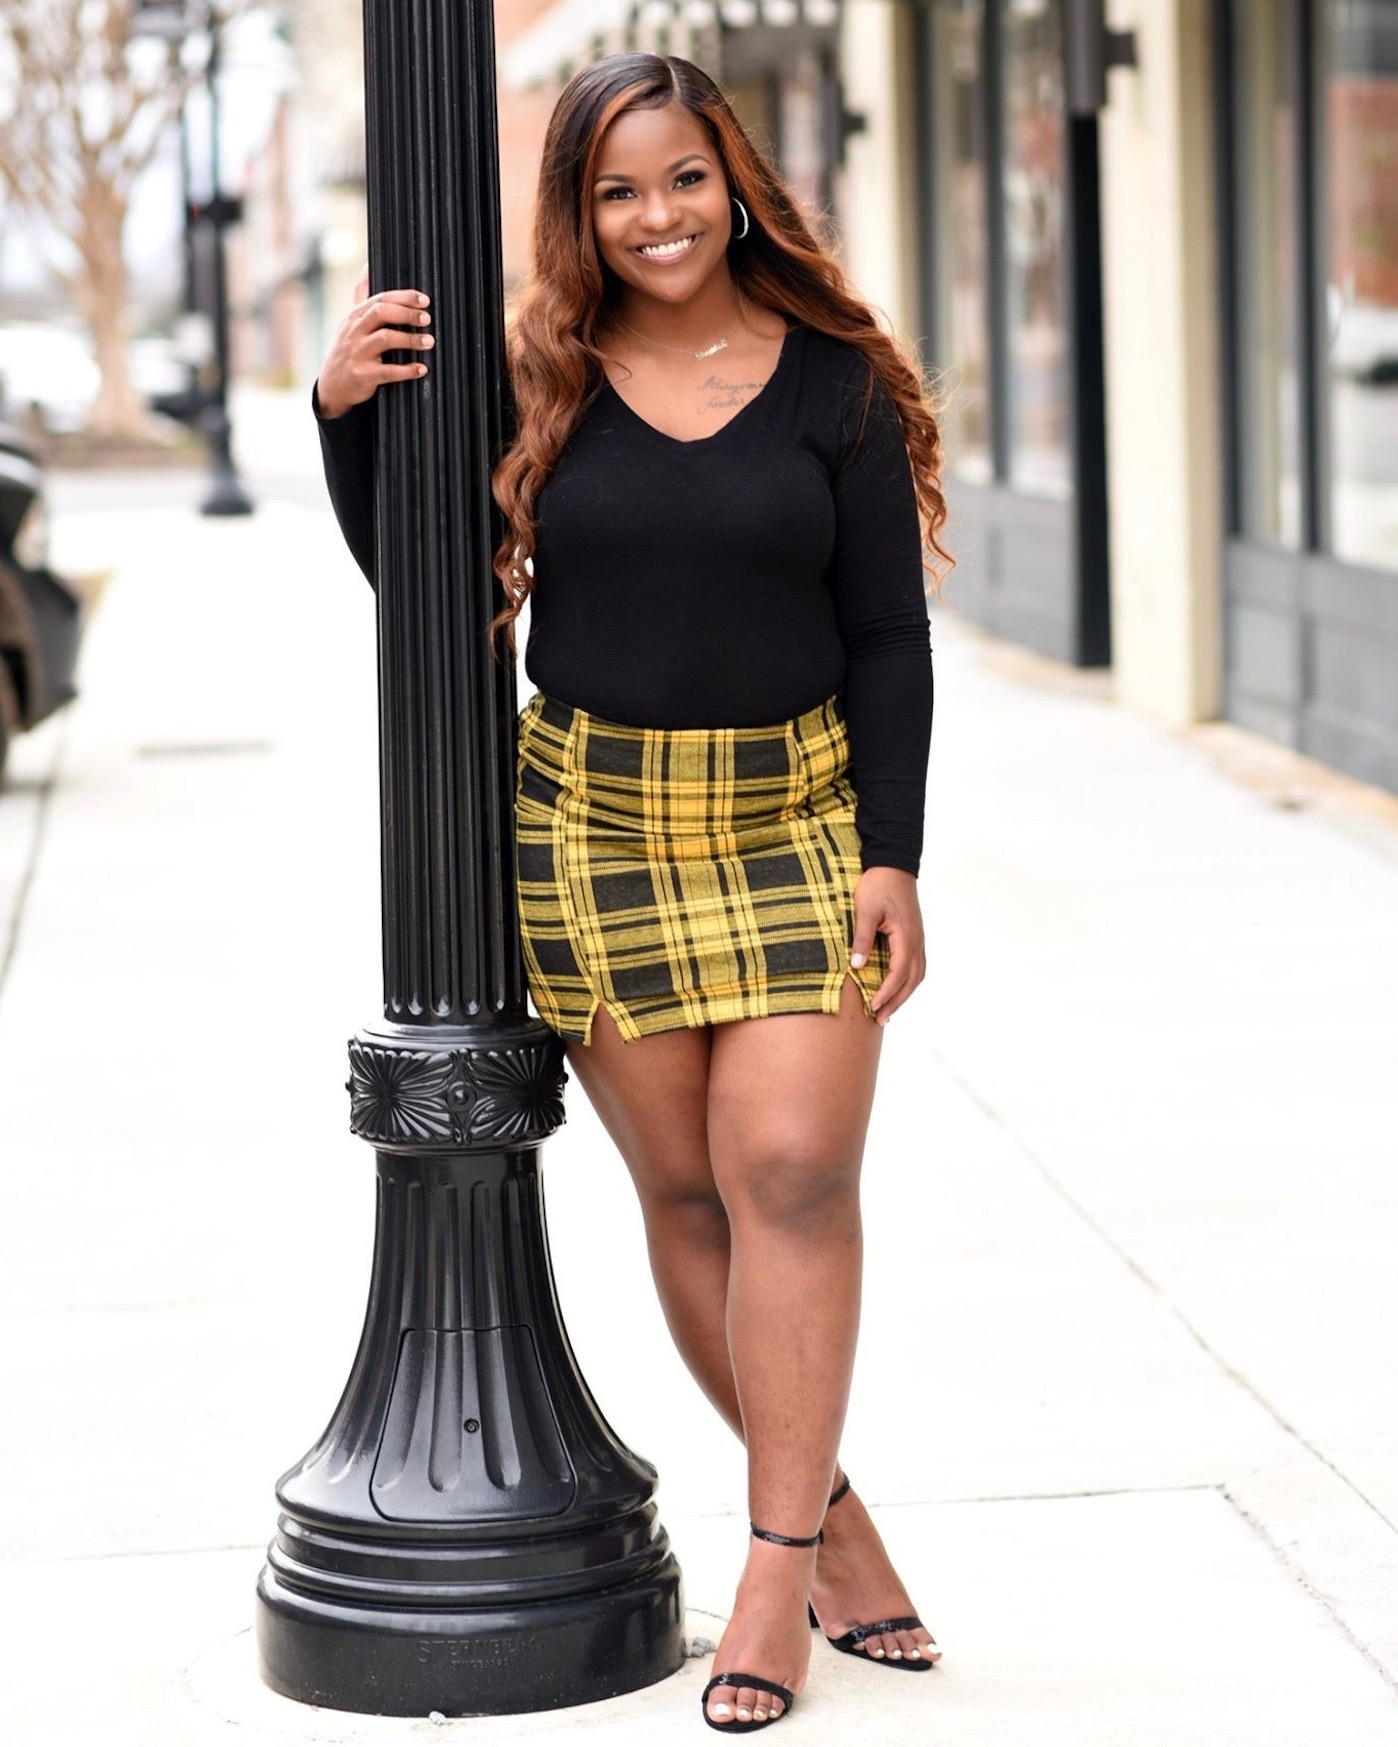 Shemiah poses for a senior photograph.